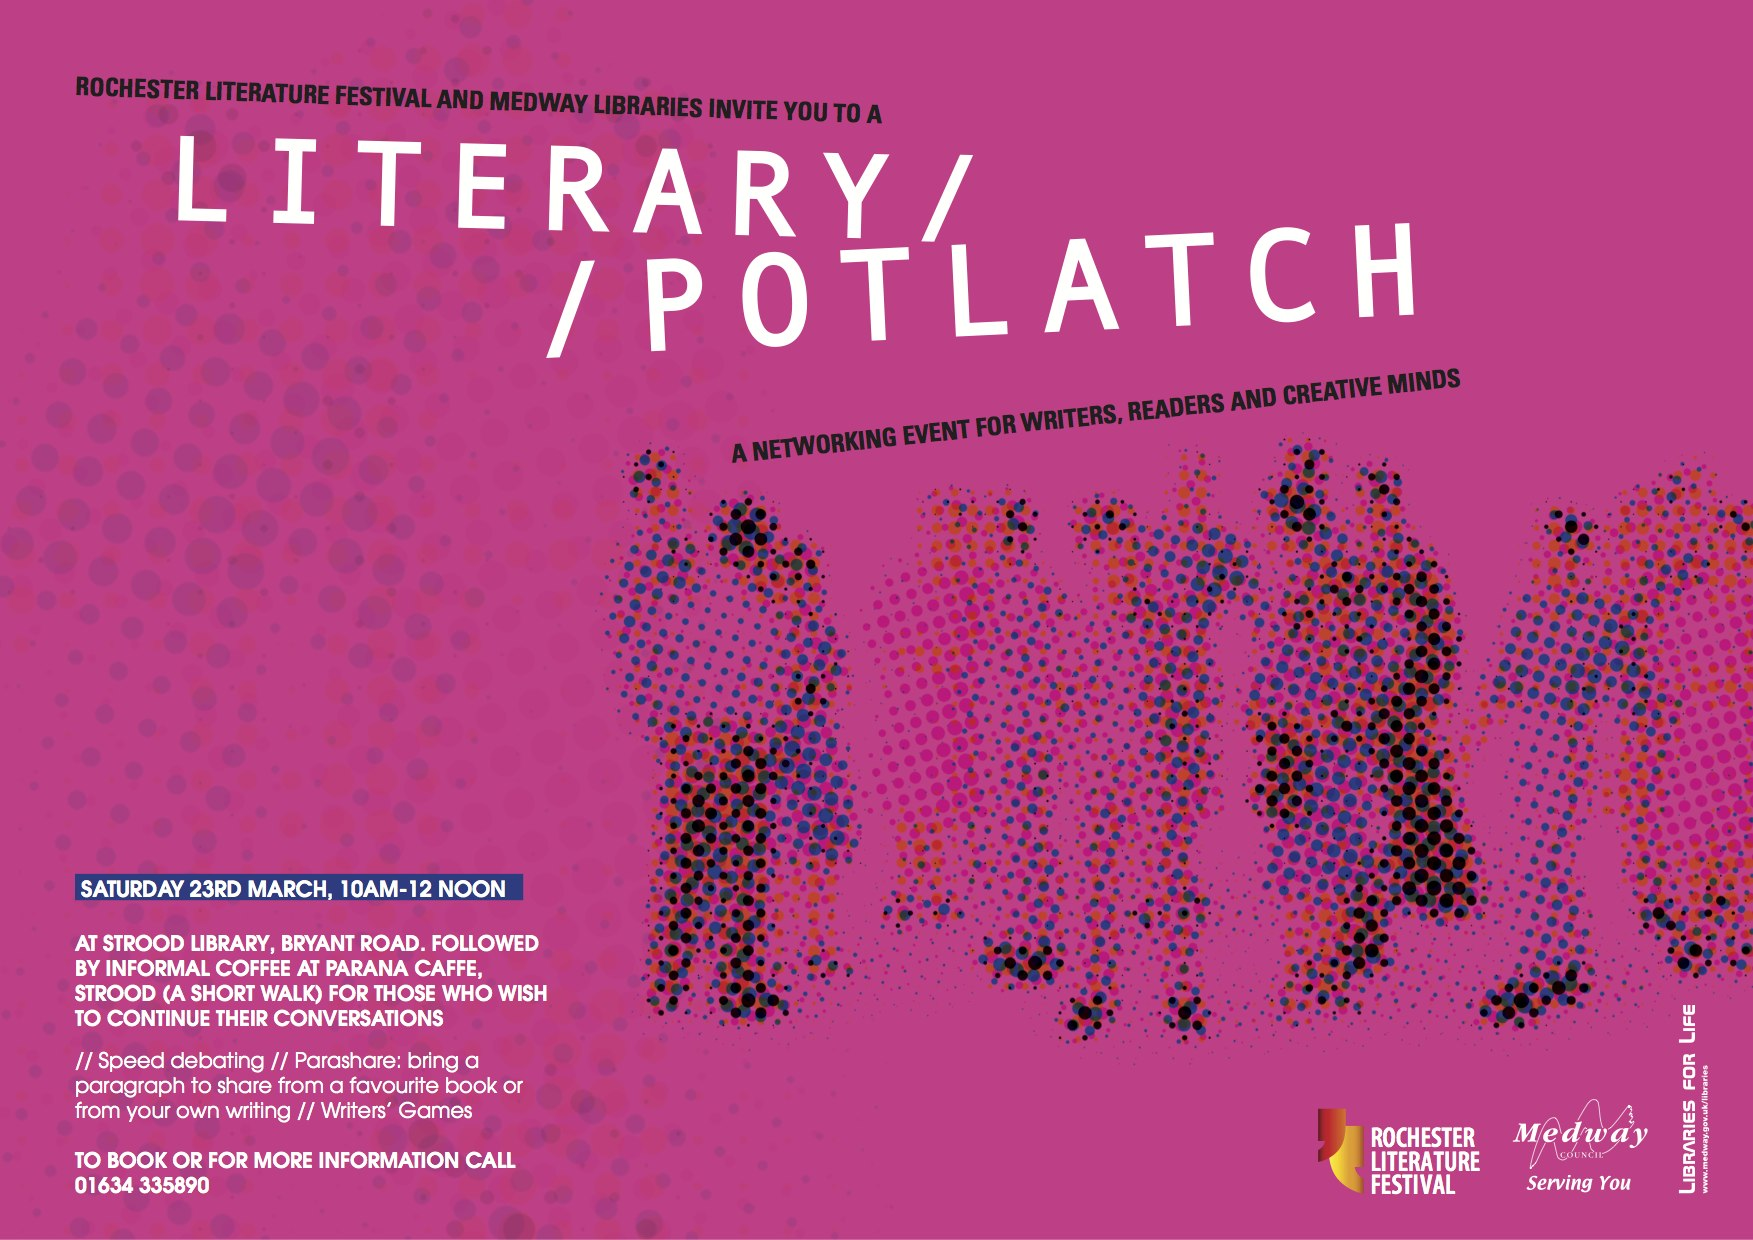 Creative Minds Literary Potlatch - A Feast of Inspiration - 23rd March 2013 - Strood